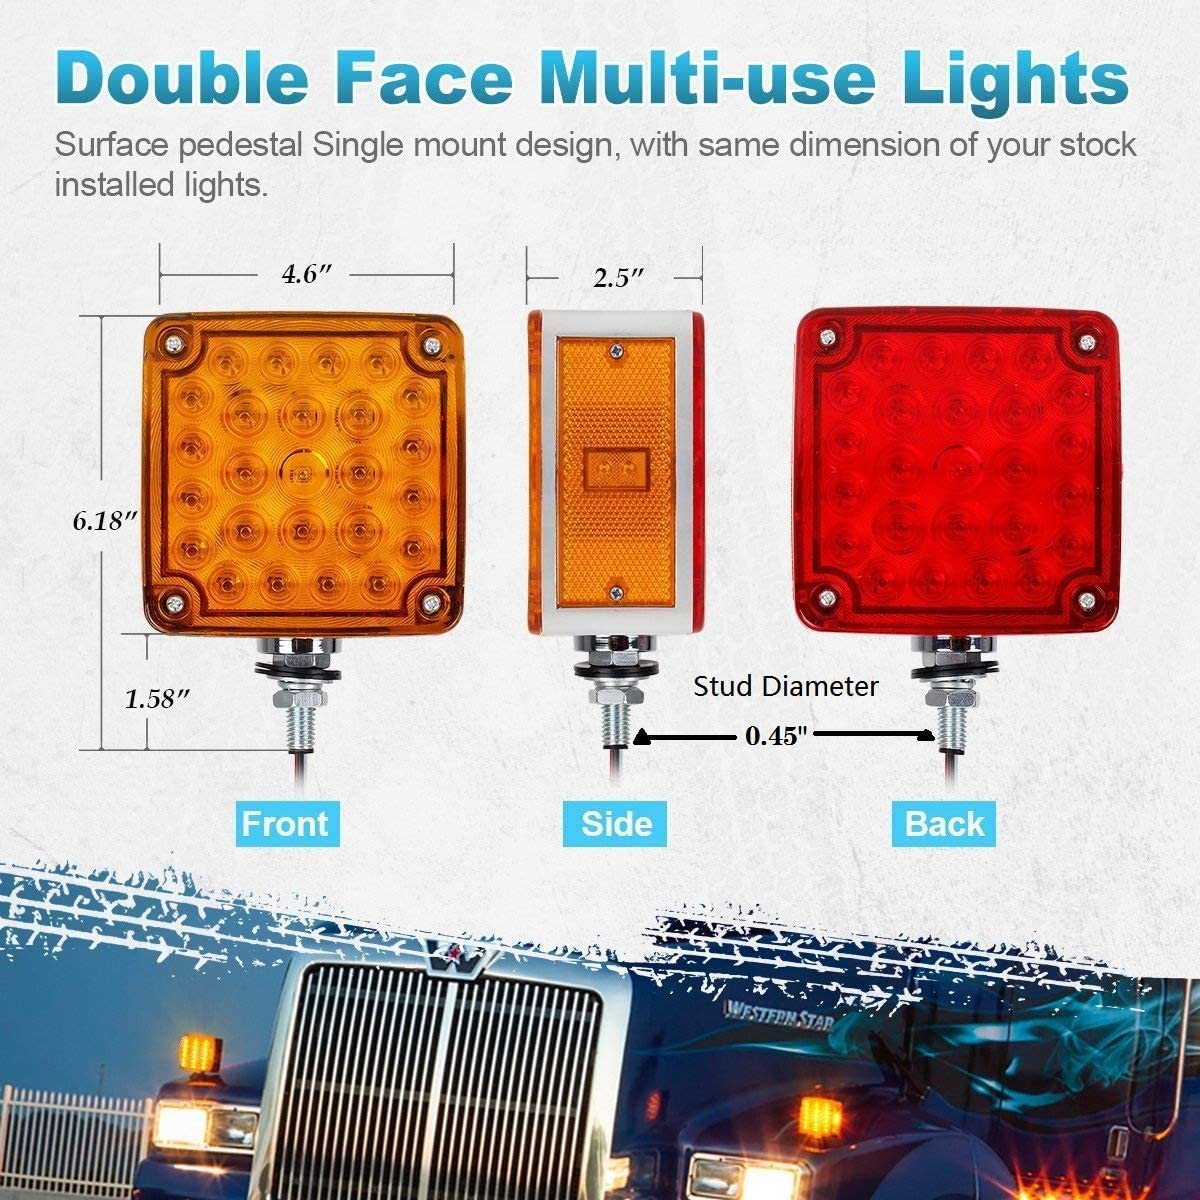 2Pcs Amber//Red Truck Trailer Mark Light 52 LED Square Dual Double Face Fender Stop Turn Signal Tail Lamp Stud Pedestal Lights Replacement for Volvo Kenworth Peterbilt Freightliner Western Star